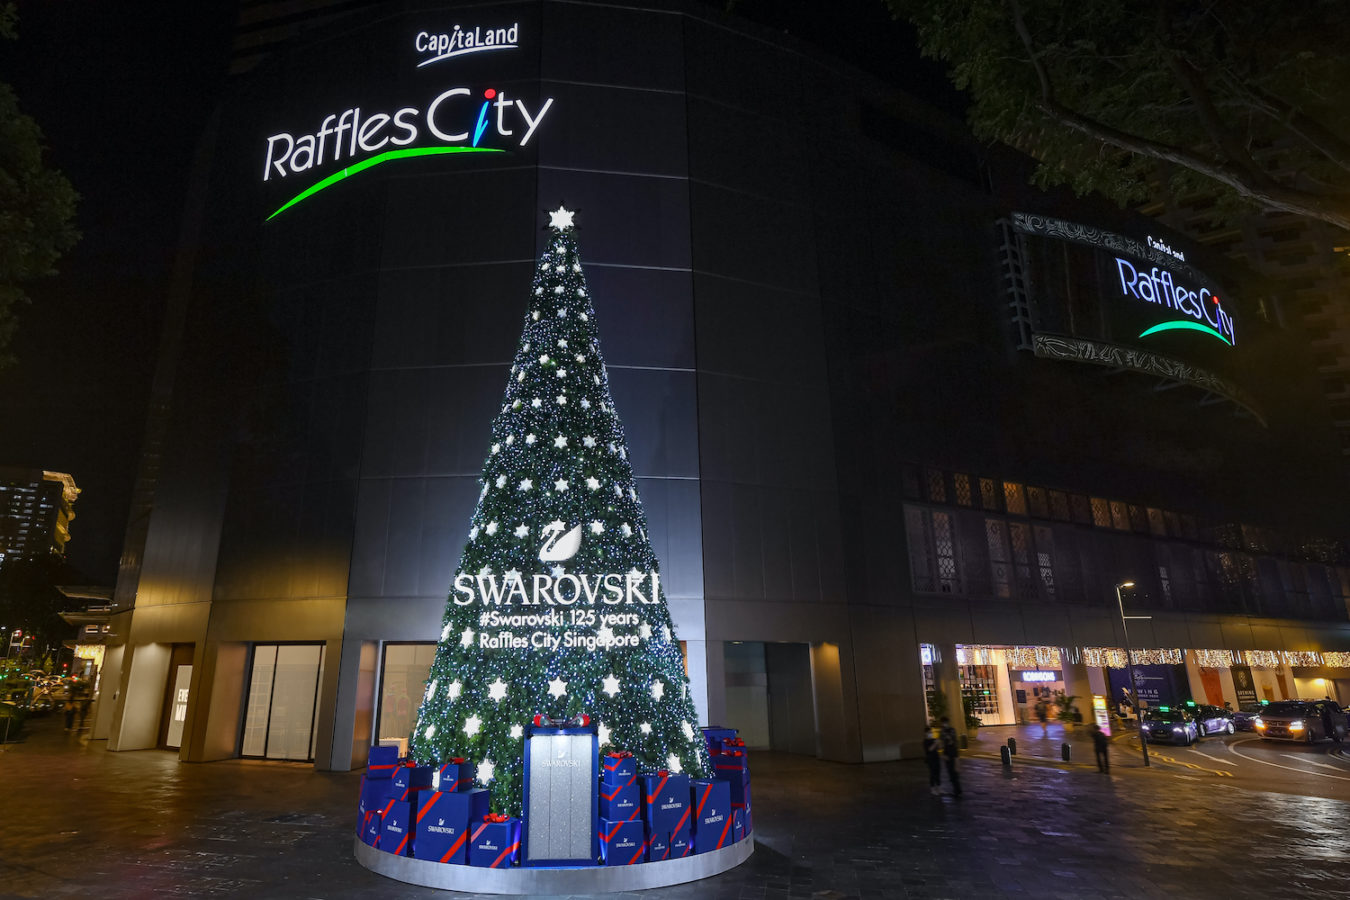 Christmas in the city: Soak in festive cheer at Raffles City